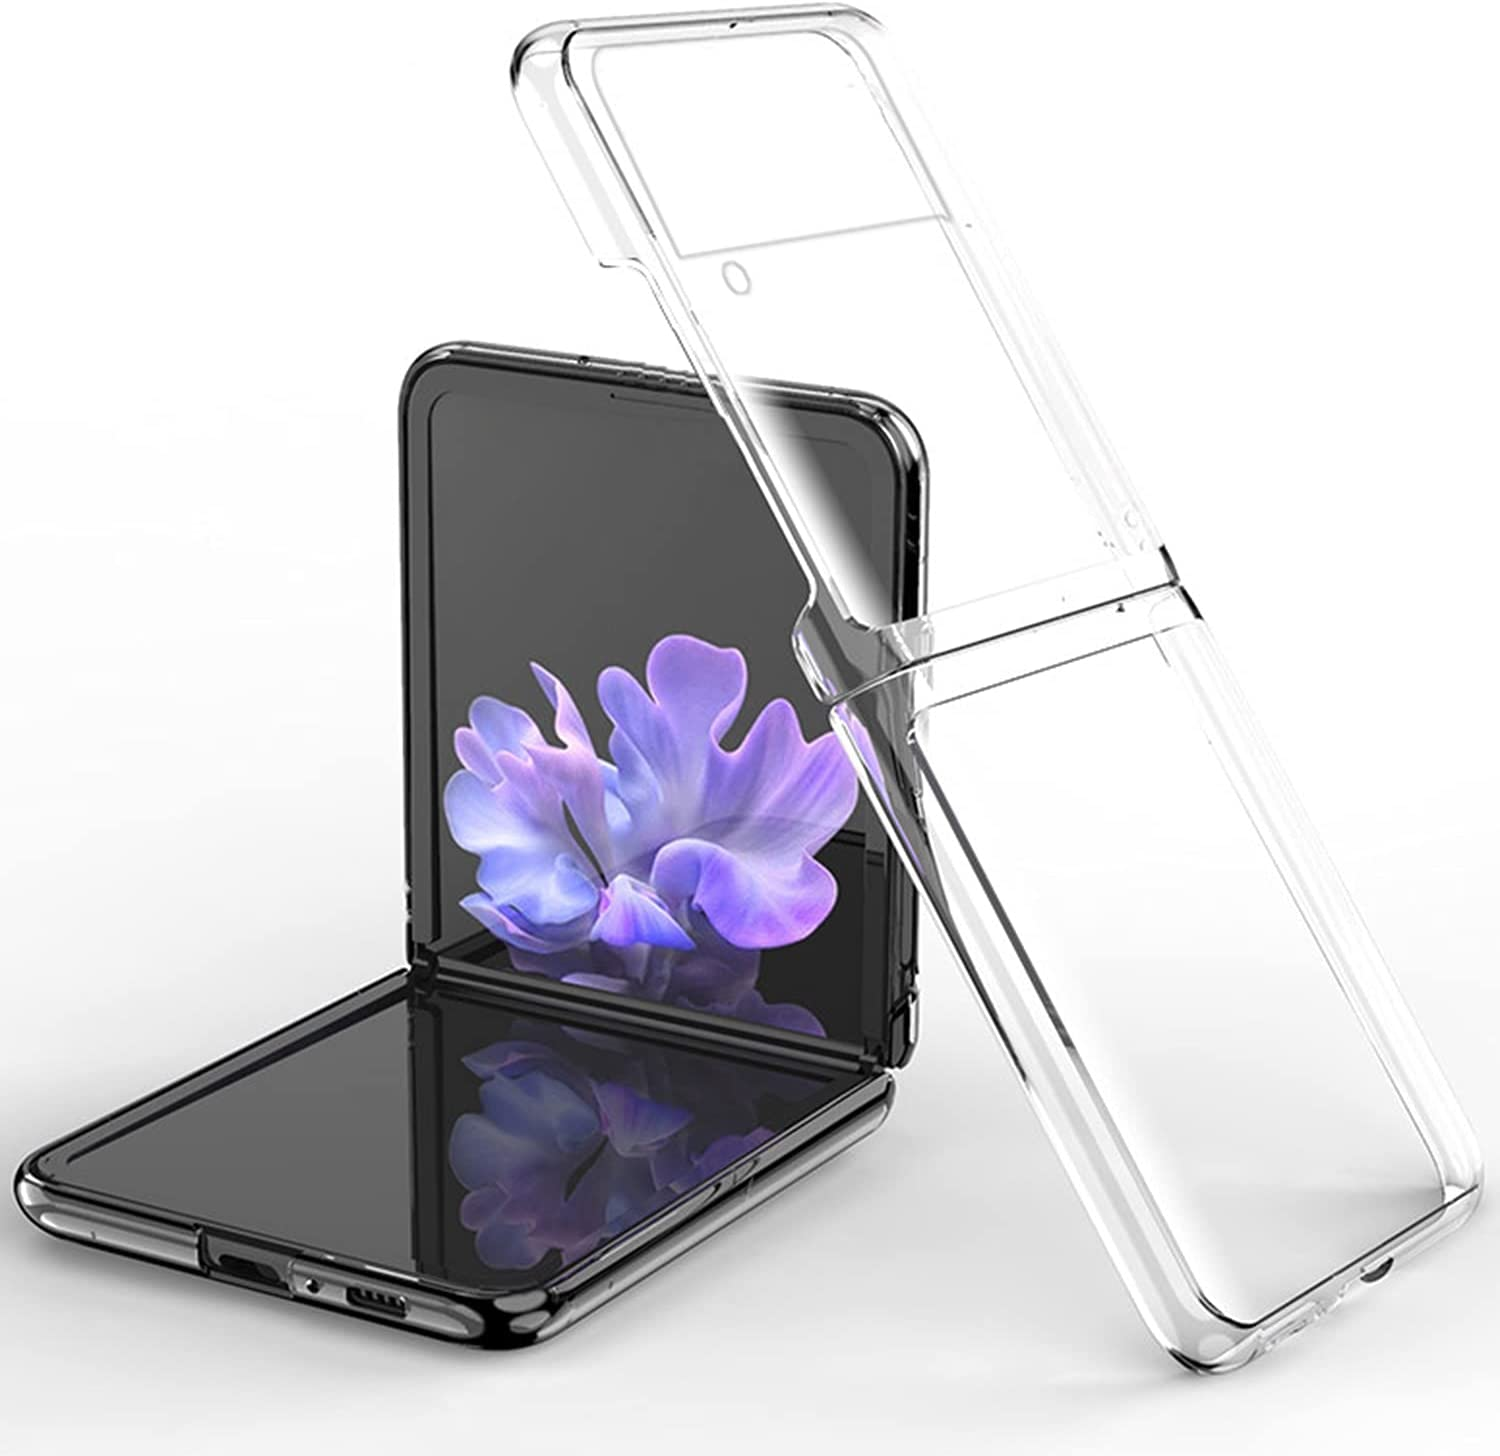 Phone Case for Galaxy Z Flip 3, Ultra Thin PC Hard Full Protection Case Compatible with Samsung Galaxy Z Flip 3 5G (Clear)